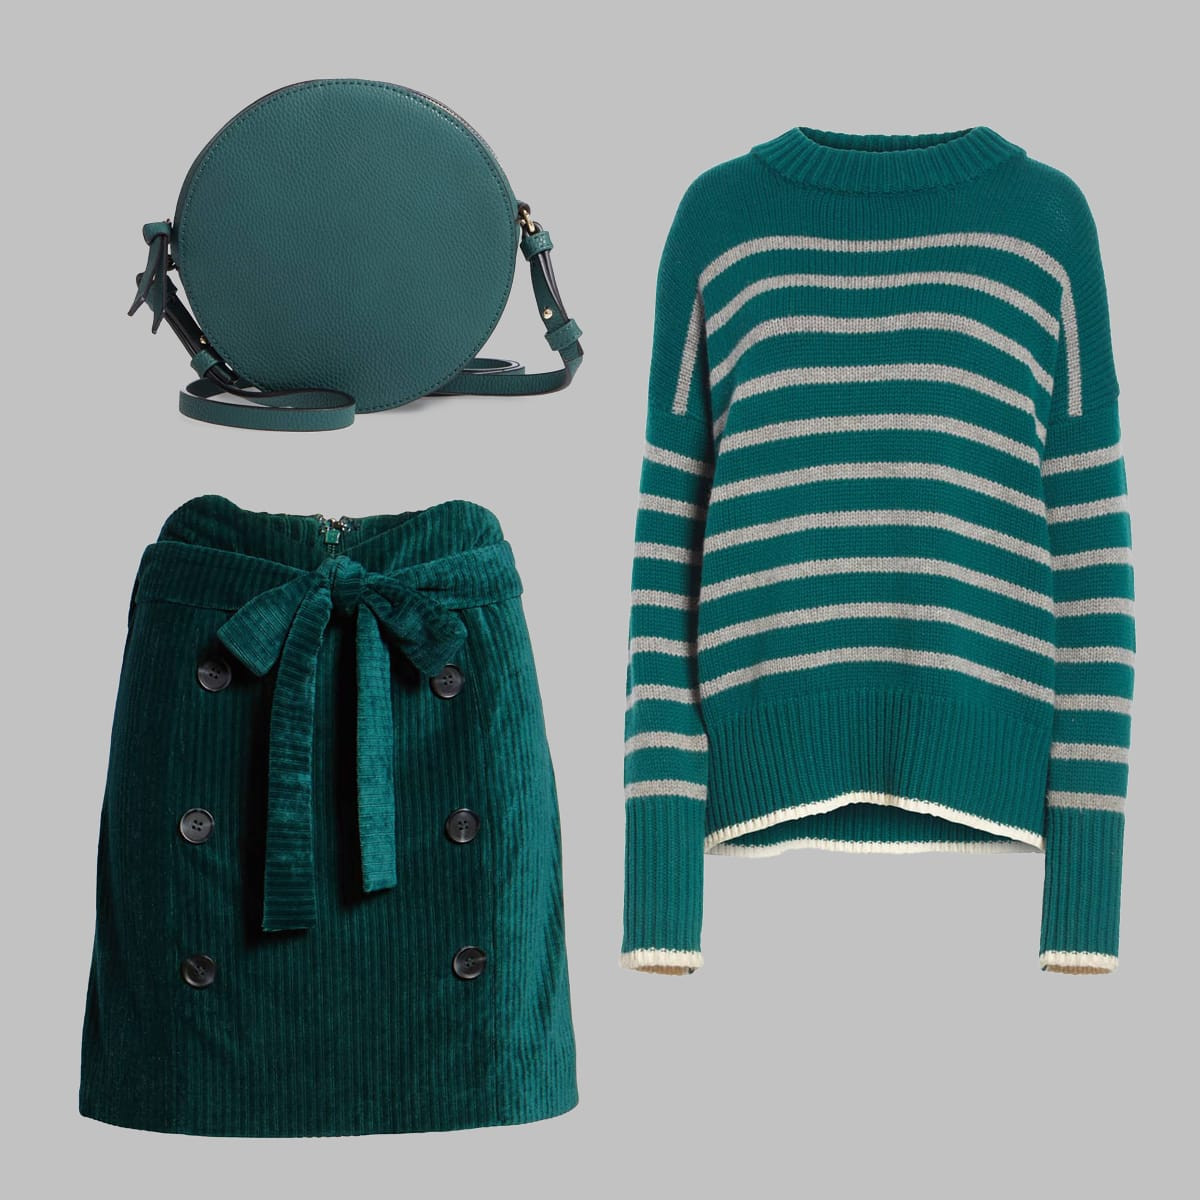 Teal sweater, velour skirt, mini bag